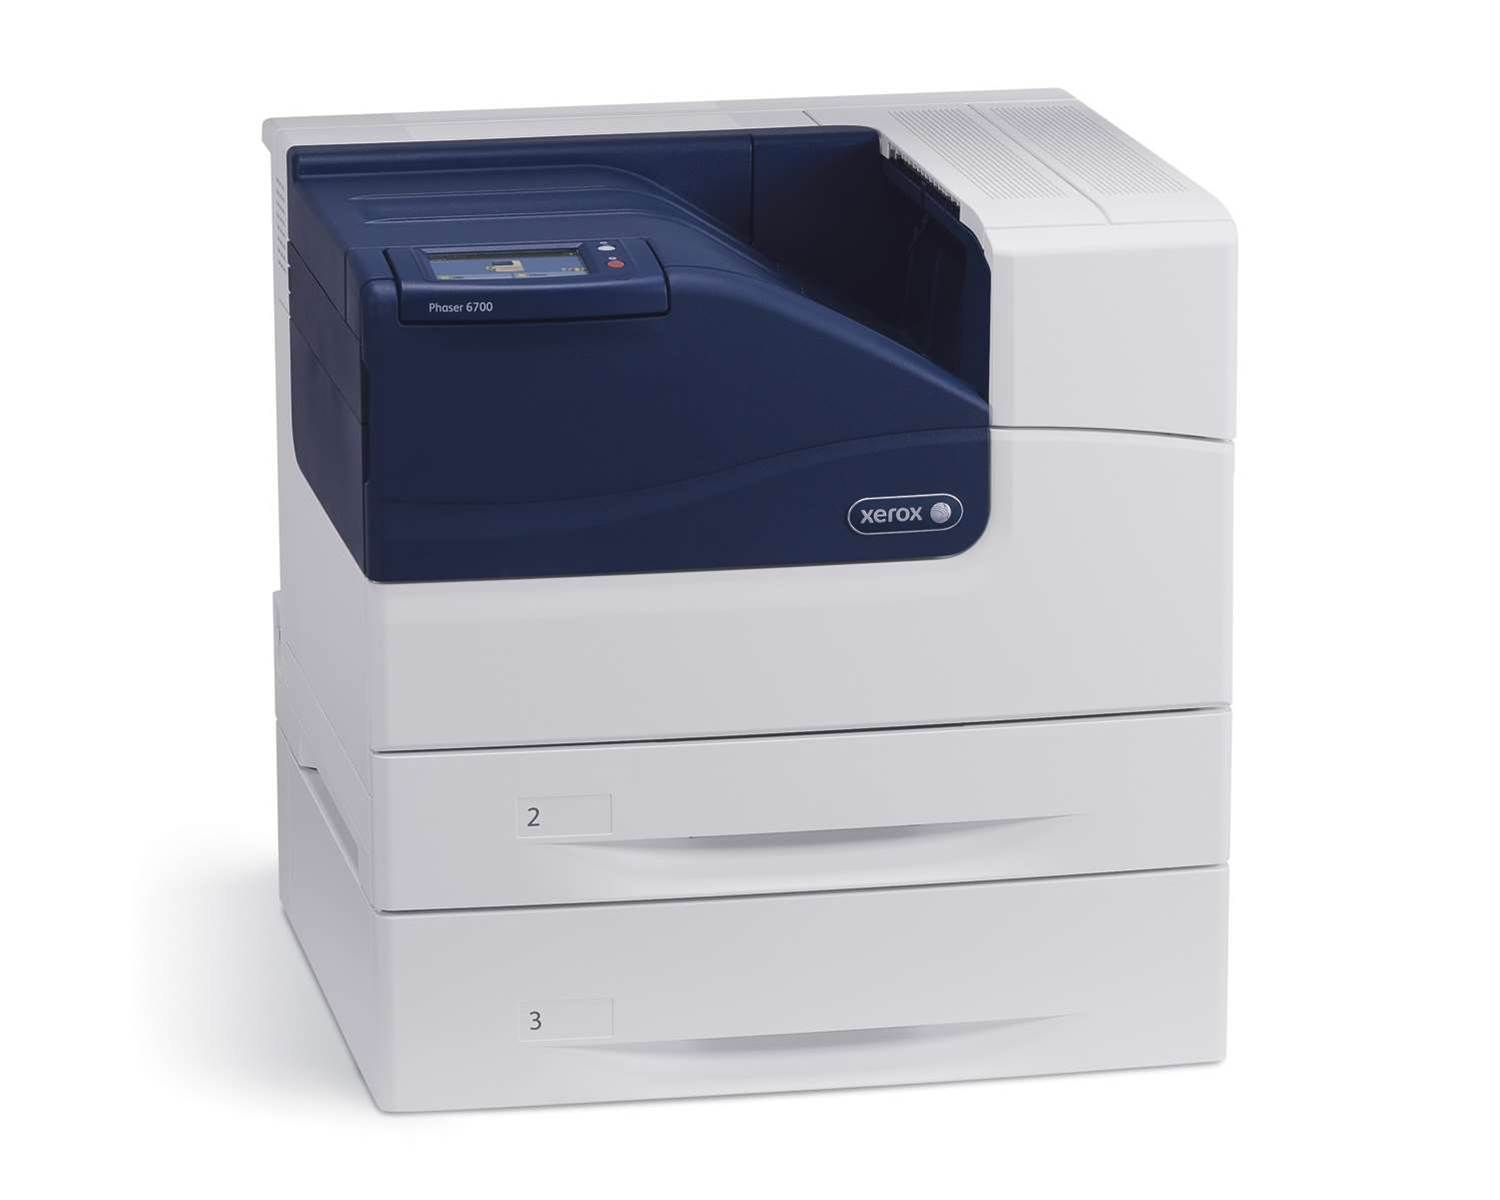 The Phaser 6700 outputs 45 ppm with 1200 X 2400 dpi, 1.25 GHz processor, 160 GB hard drive and 120,000 page monthly cycle. It will retail for $3499.